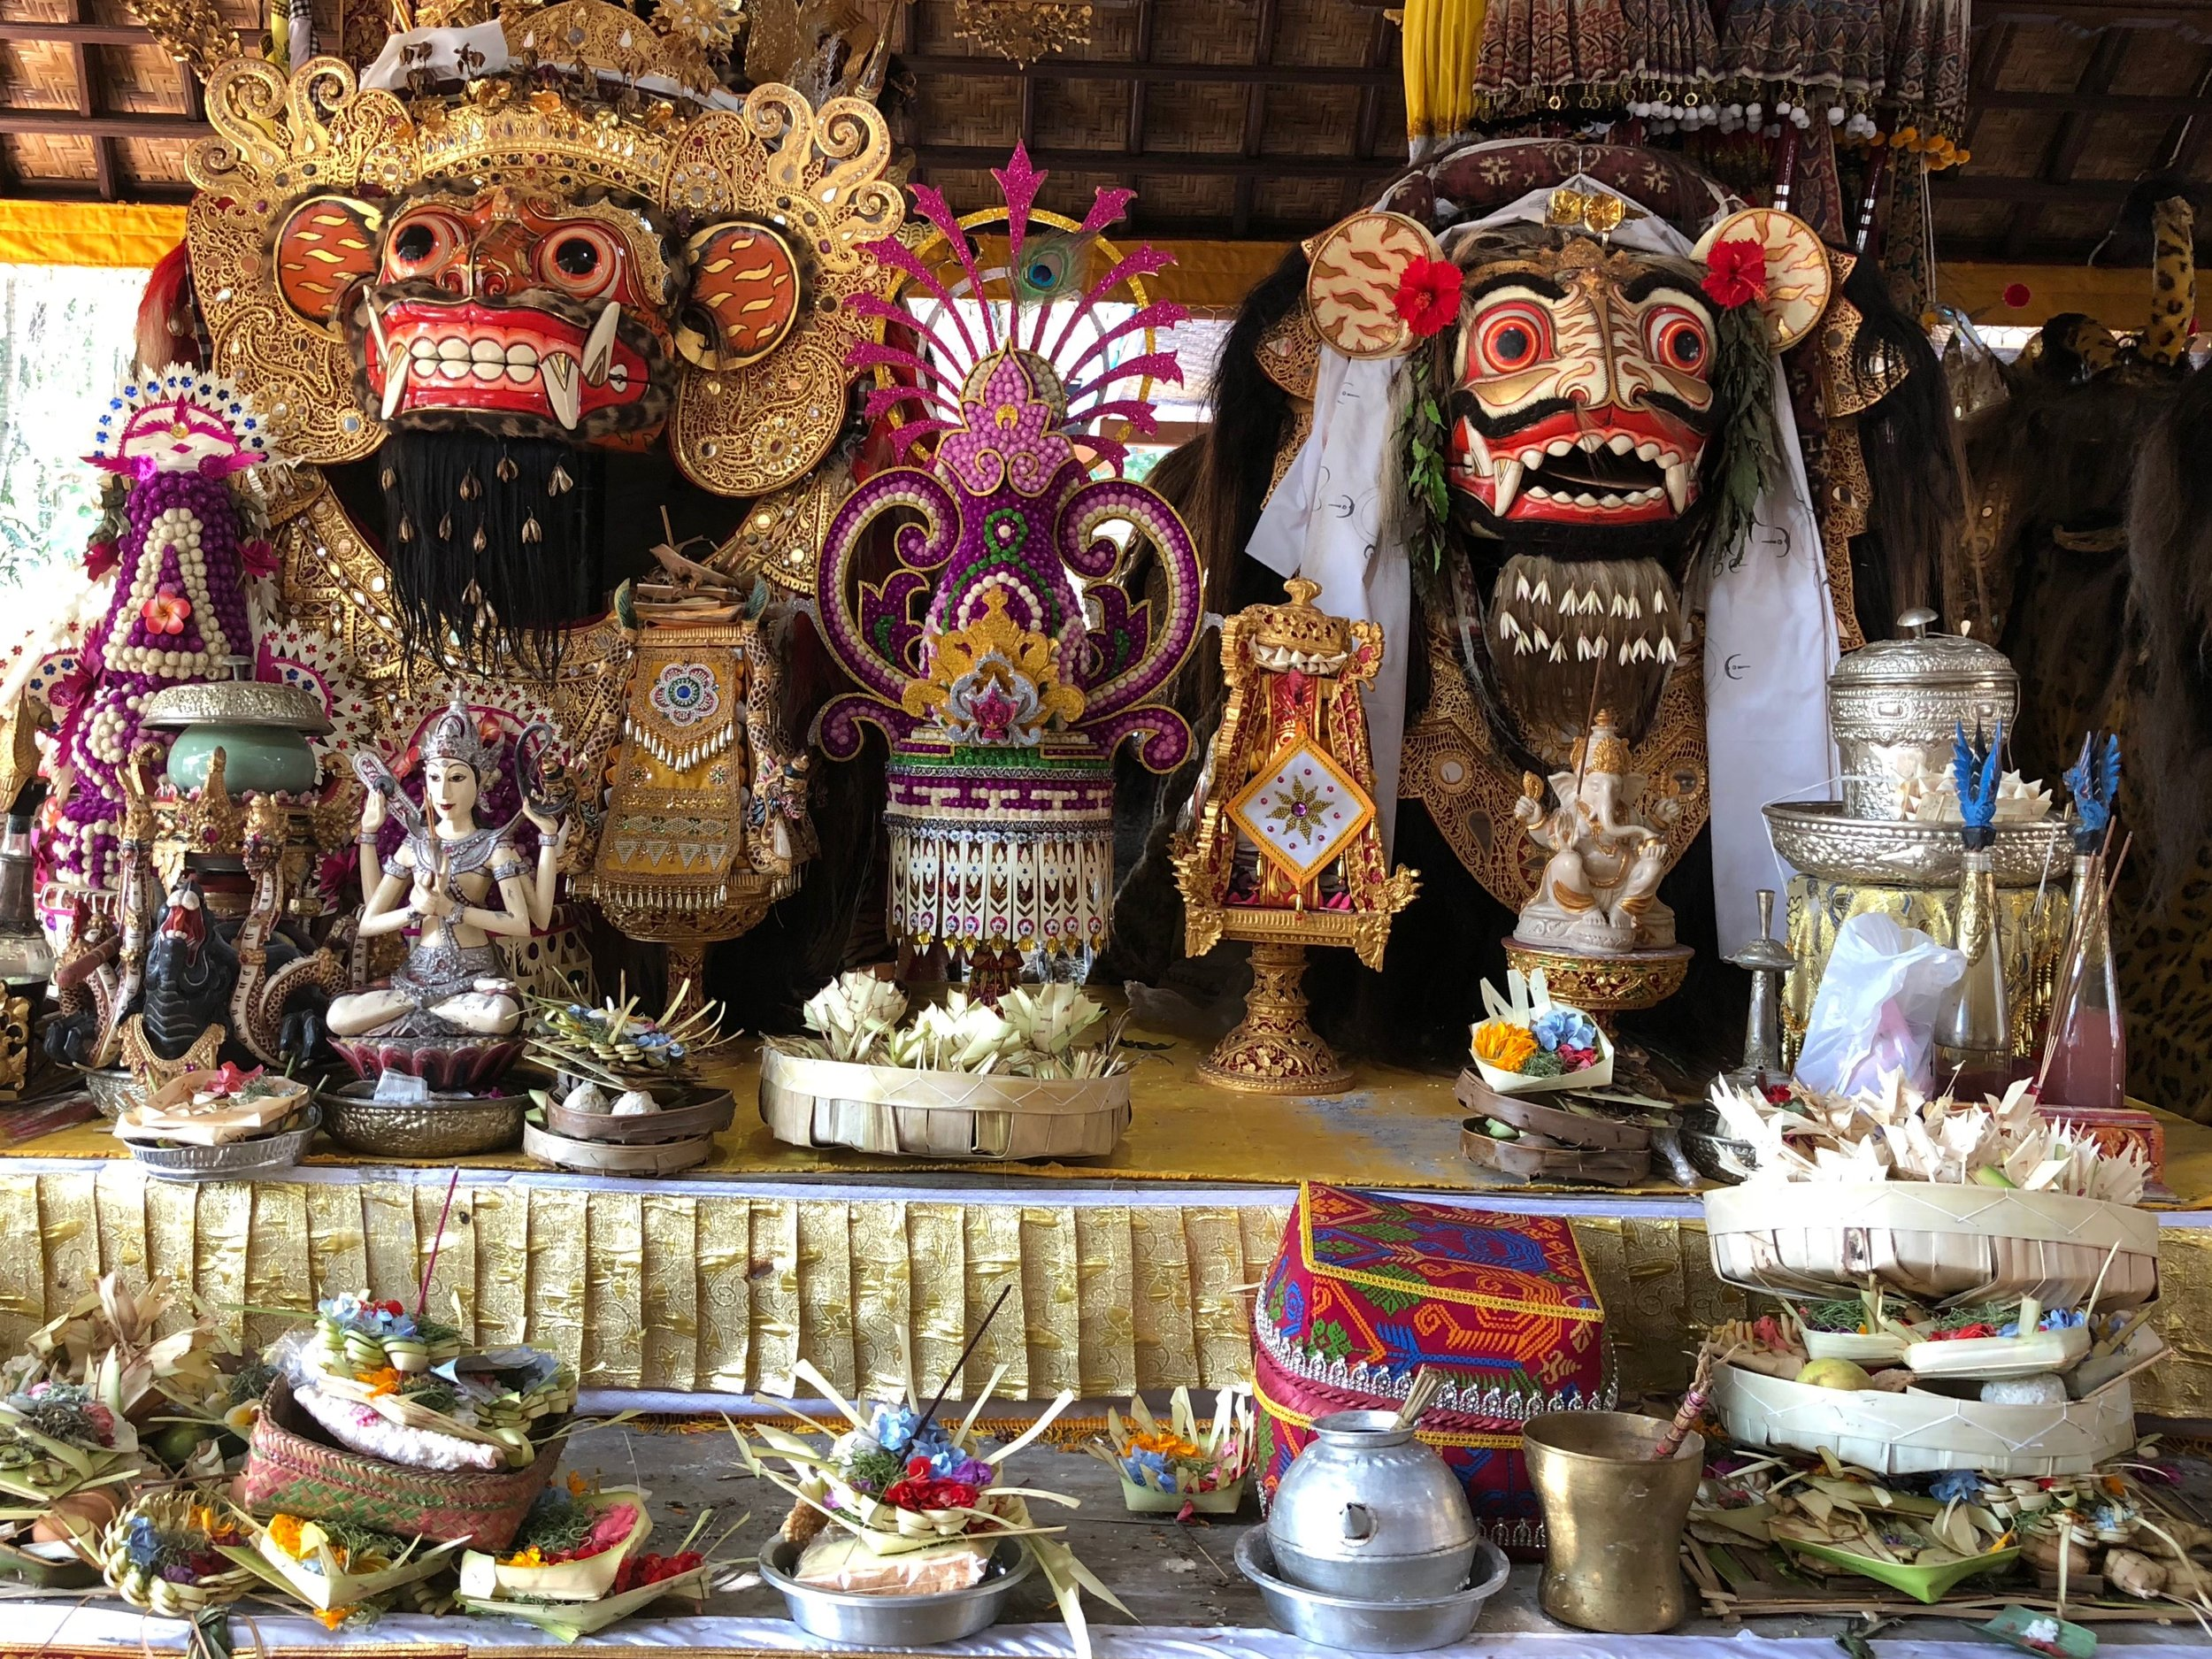 Masks of Barong lined an entire pavilion at Samuan Tiga